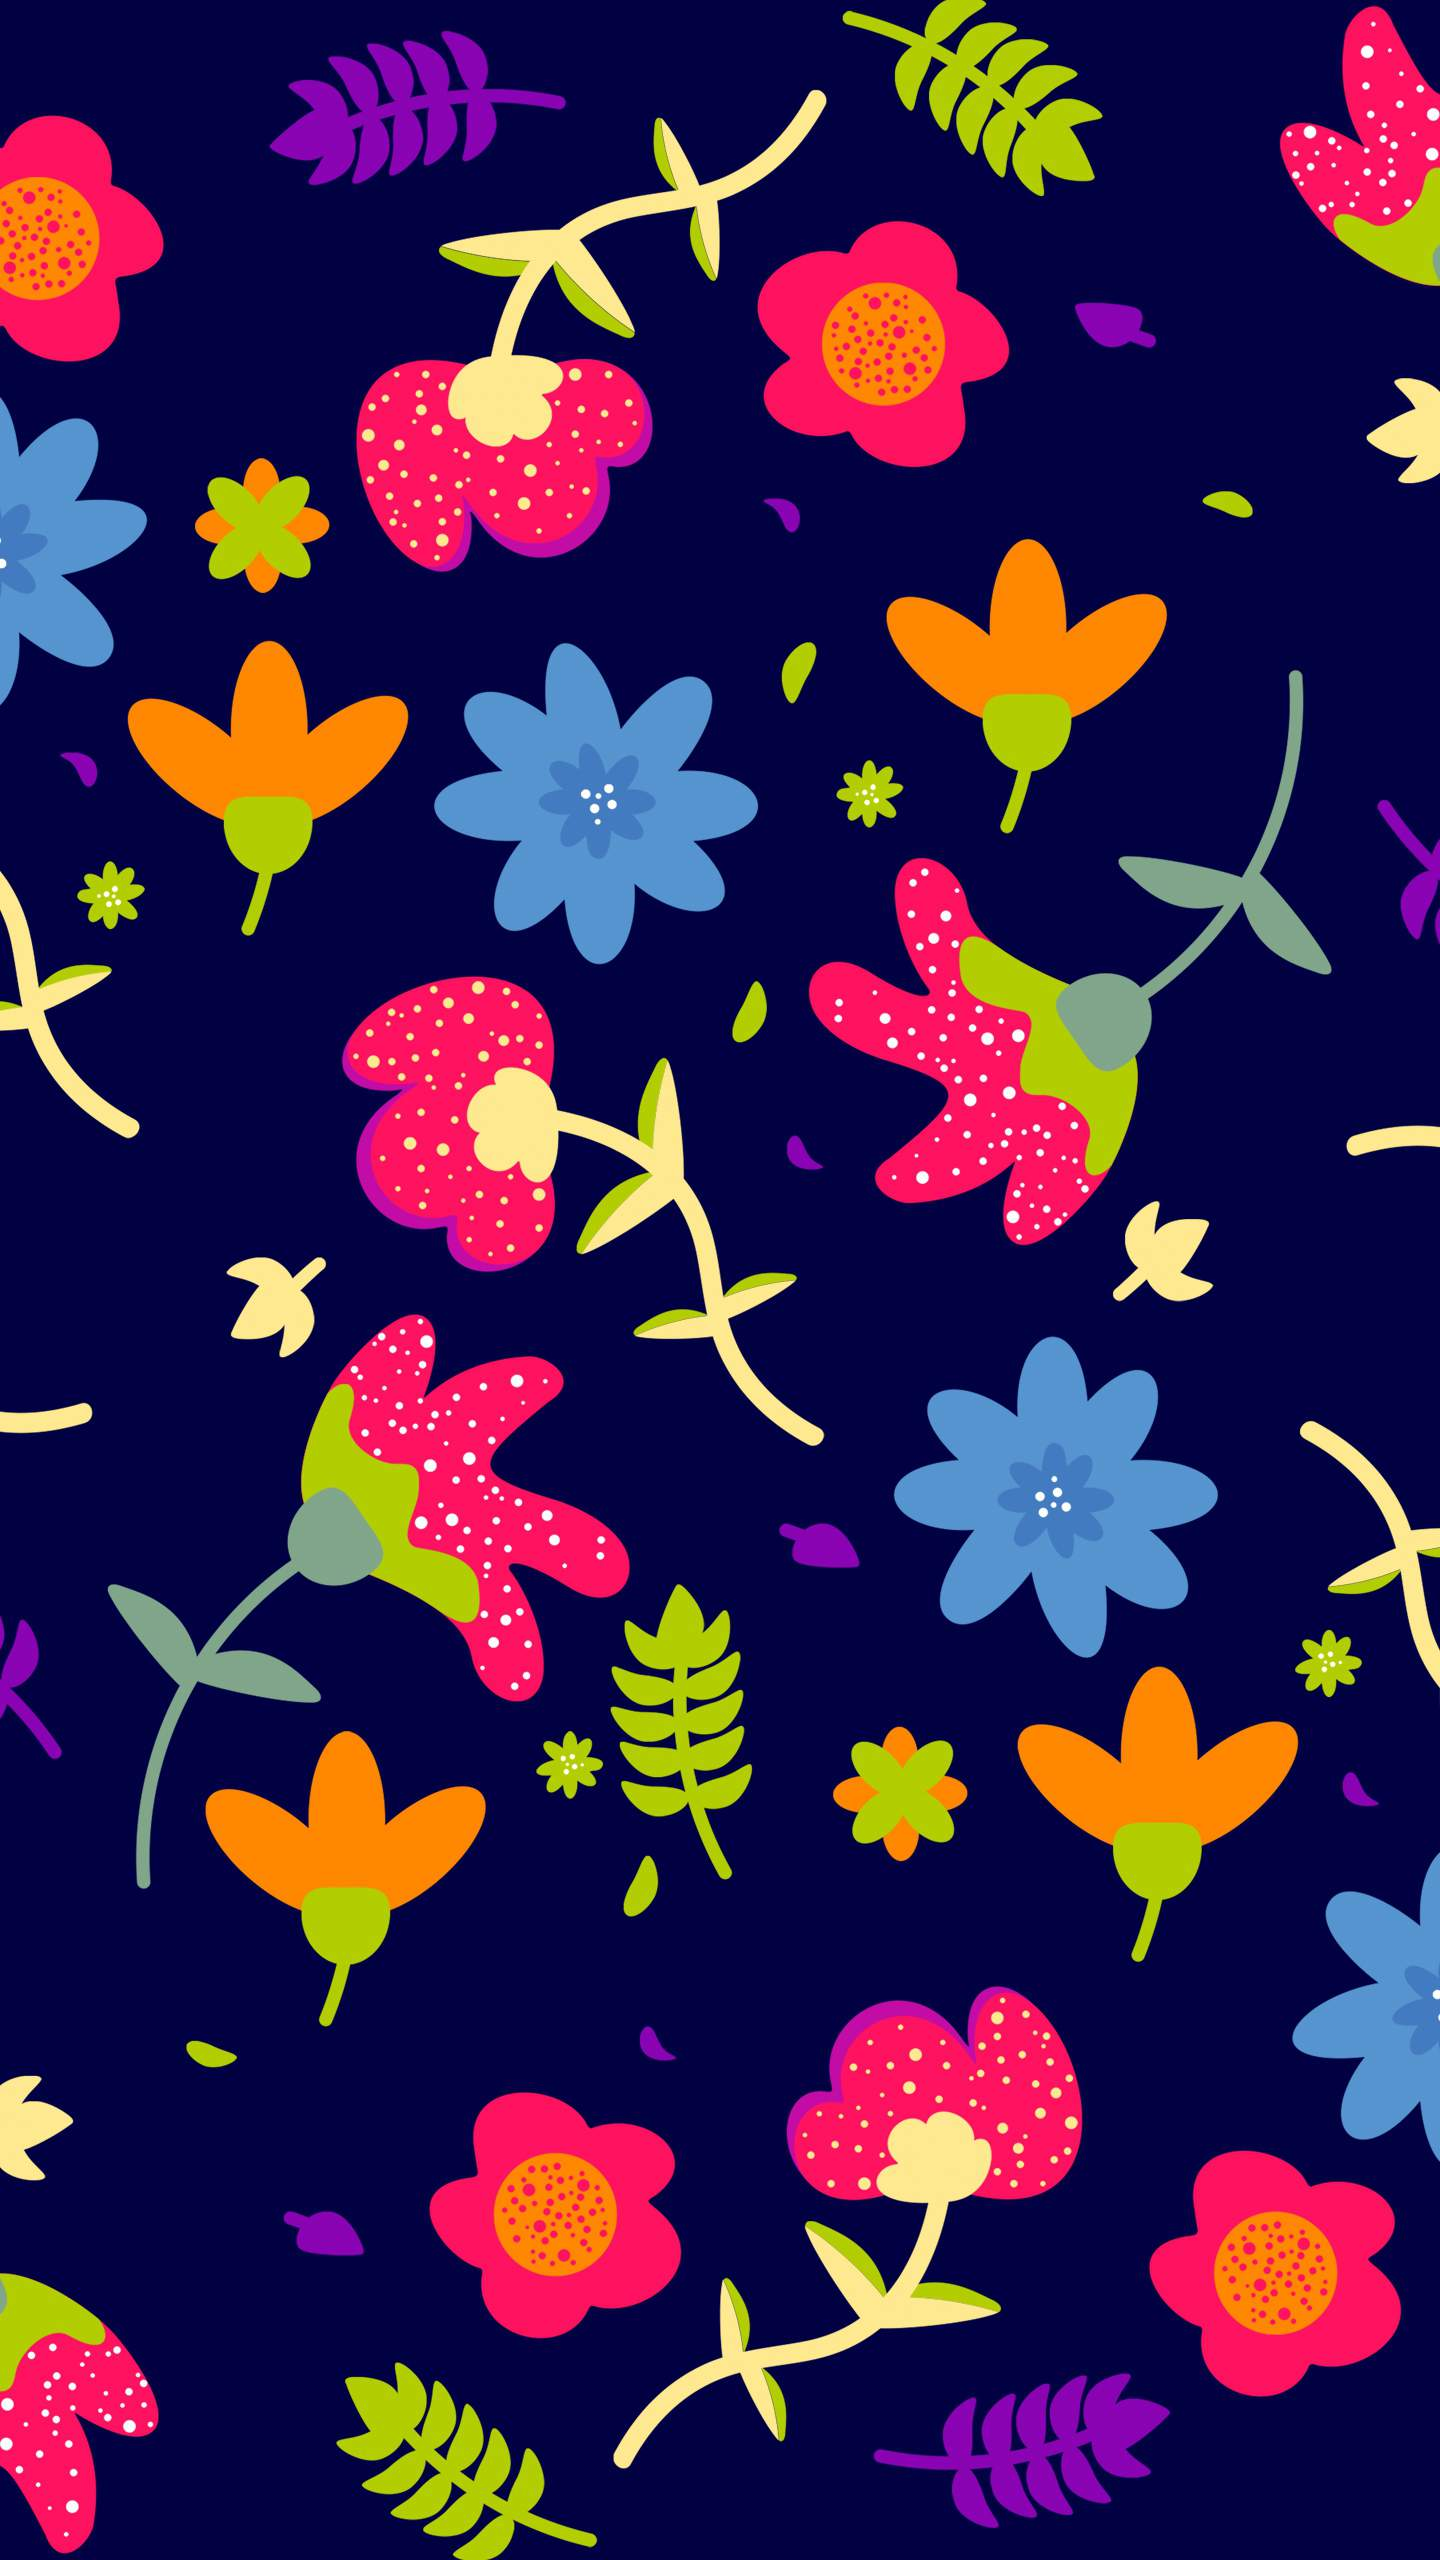 Computer Wallpaper For Girls Spring Flowers Minimal Iphone Wallpaper Iphone Wallpapers